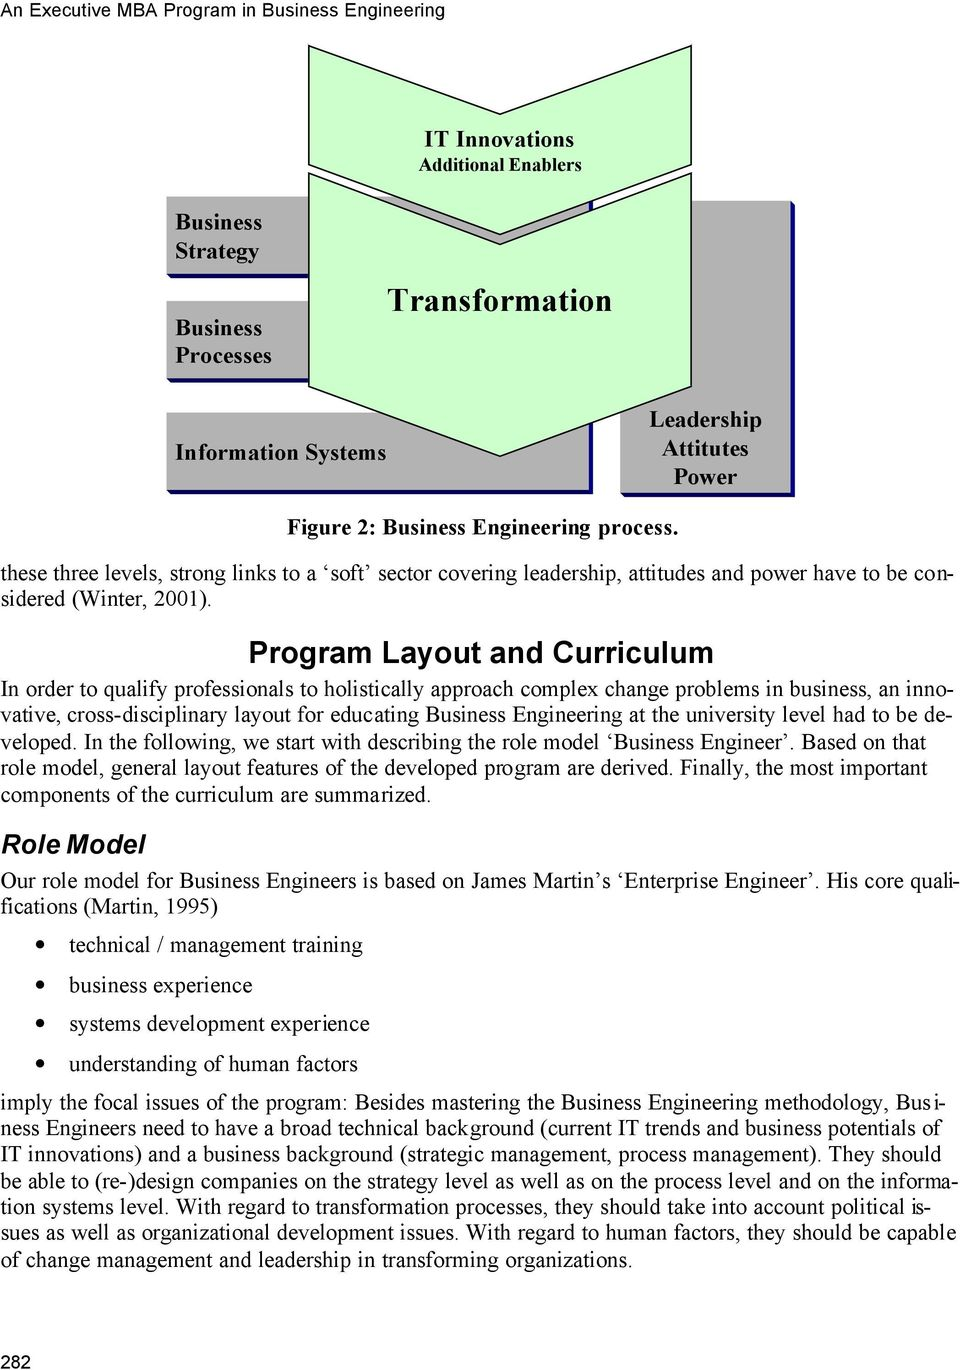 Program Layout and Curriculum In order to qualify professionals to holistically approach complex change problems in business, an innovative, cross-disciplinary layout for educating Business